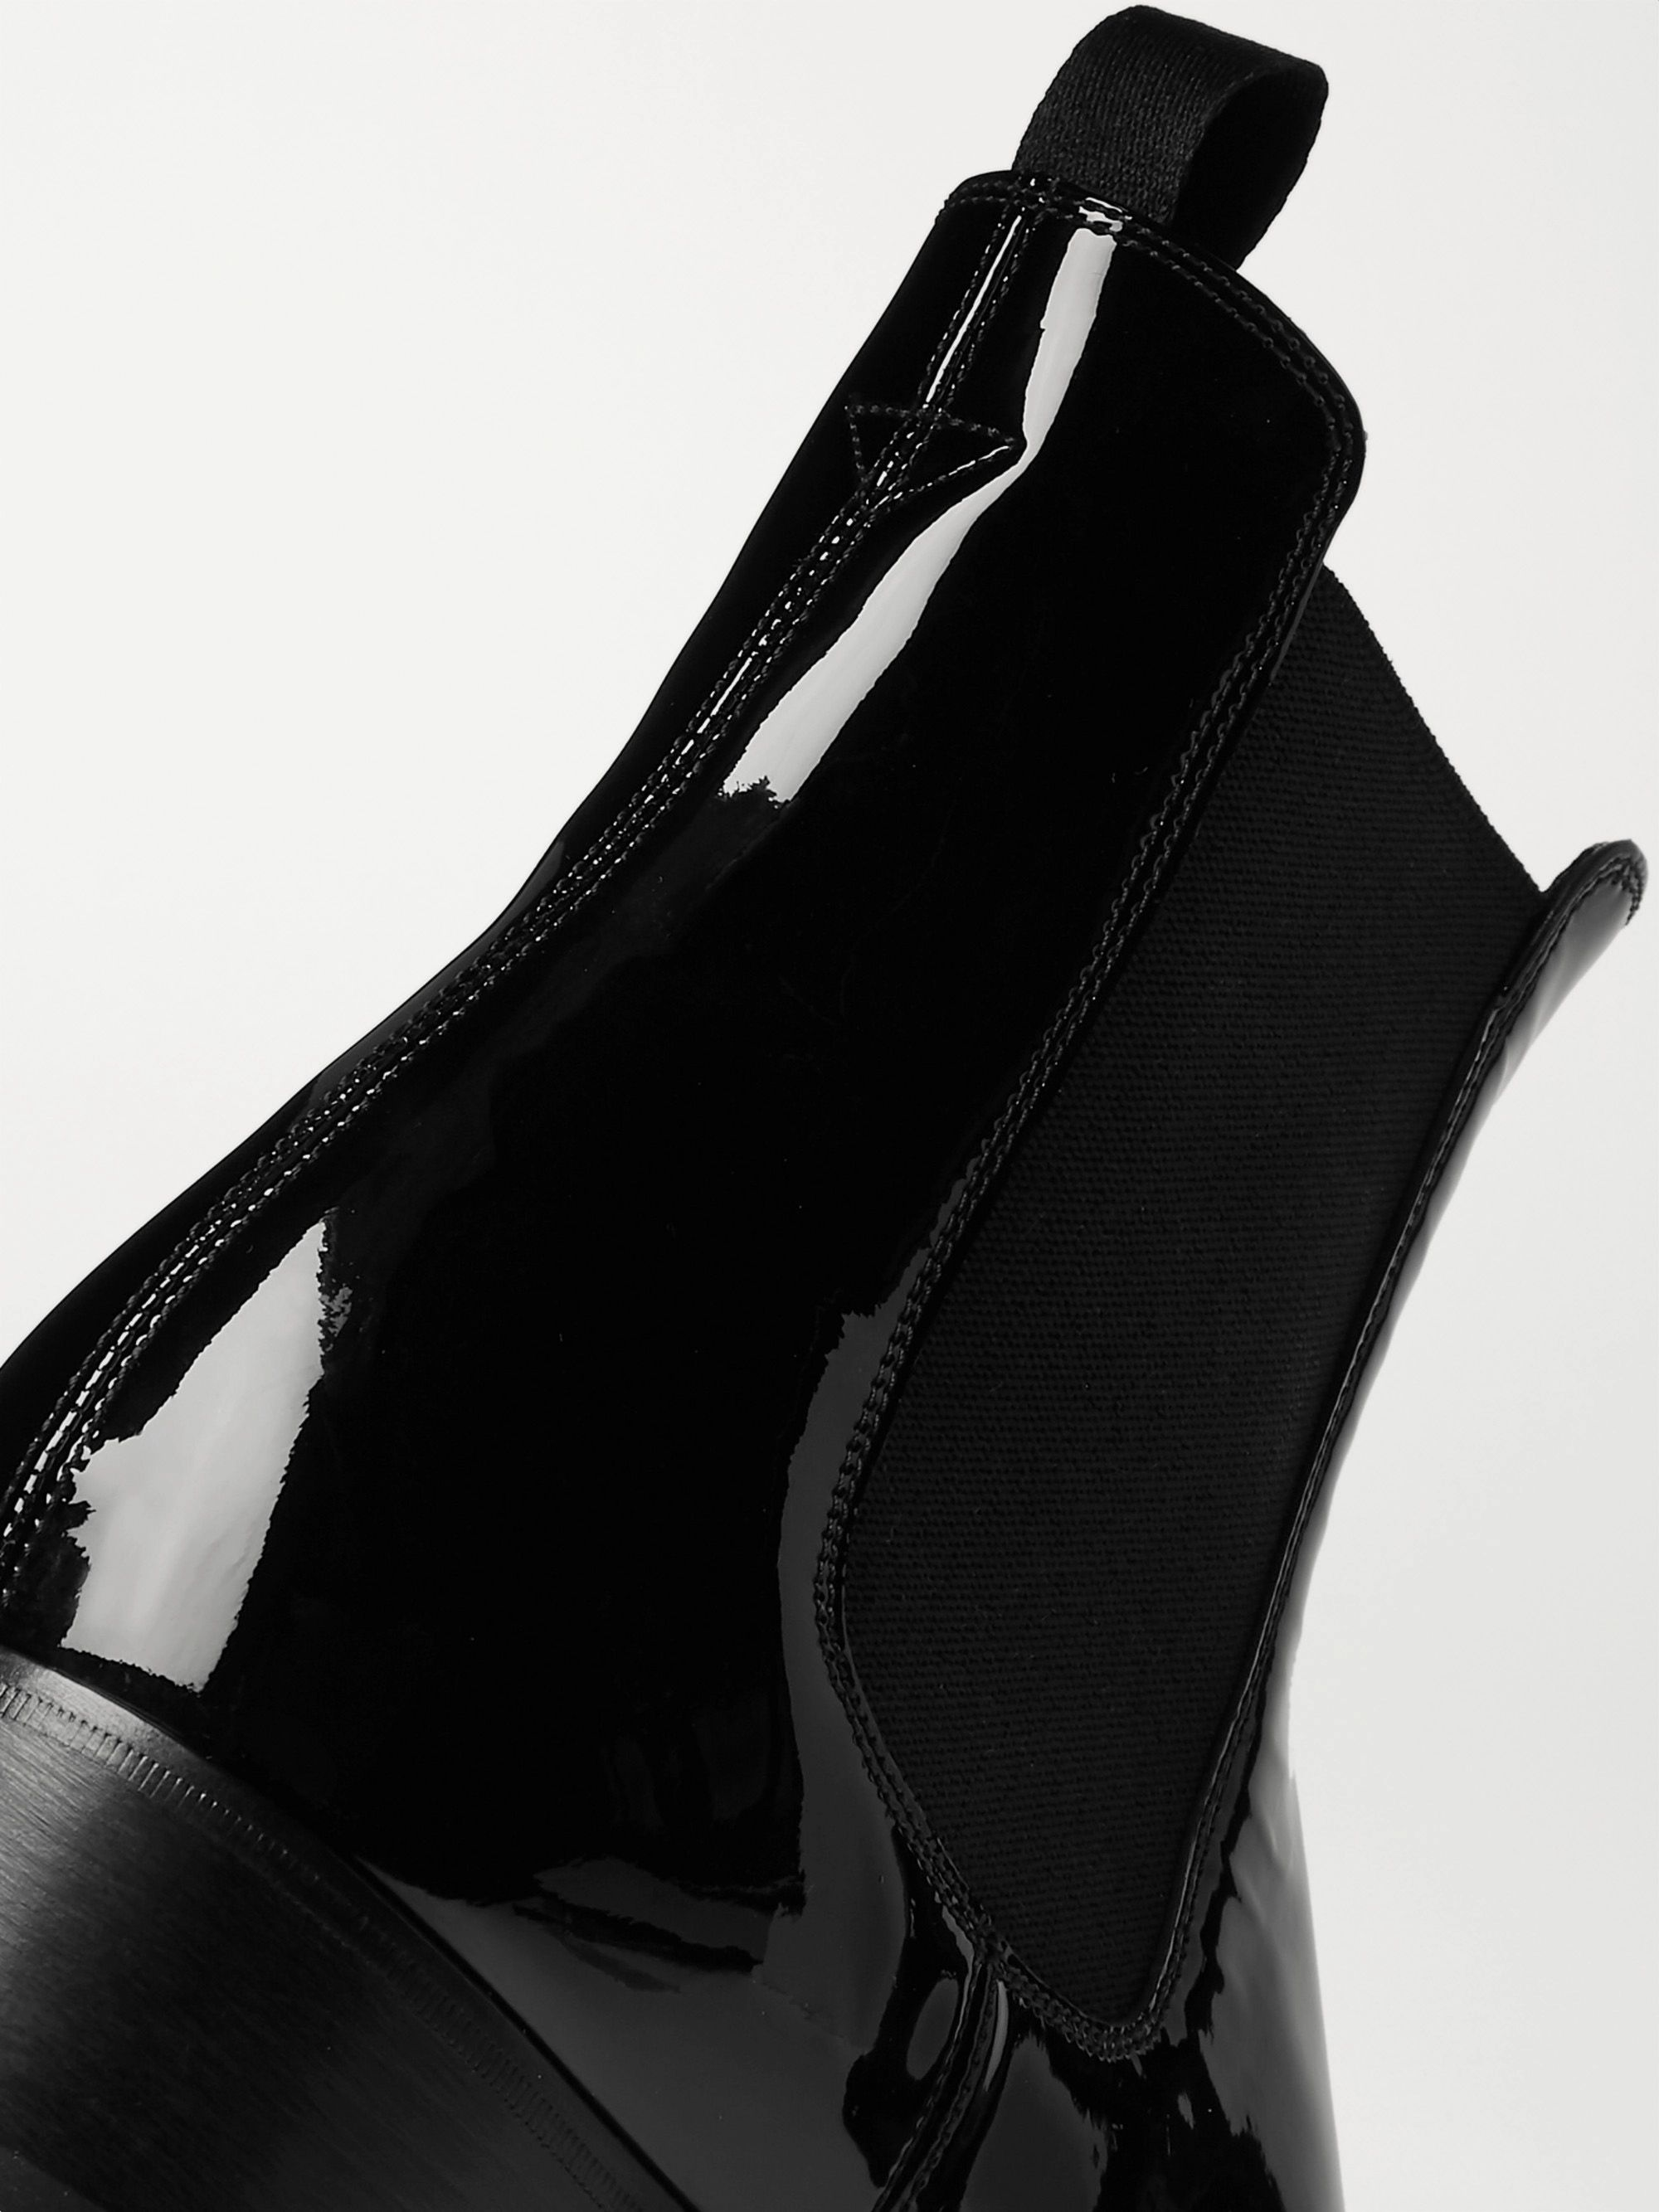 TOM FORD Hainaut Patent-Leather Chelsea Boots